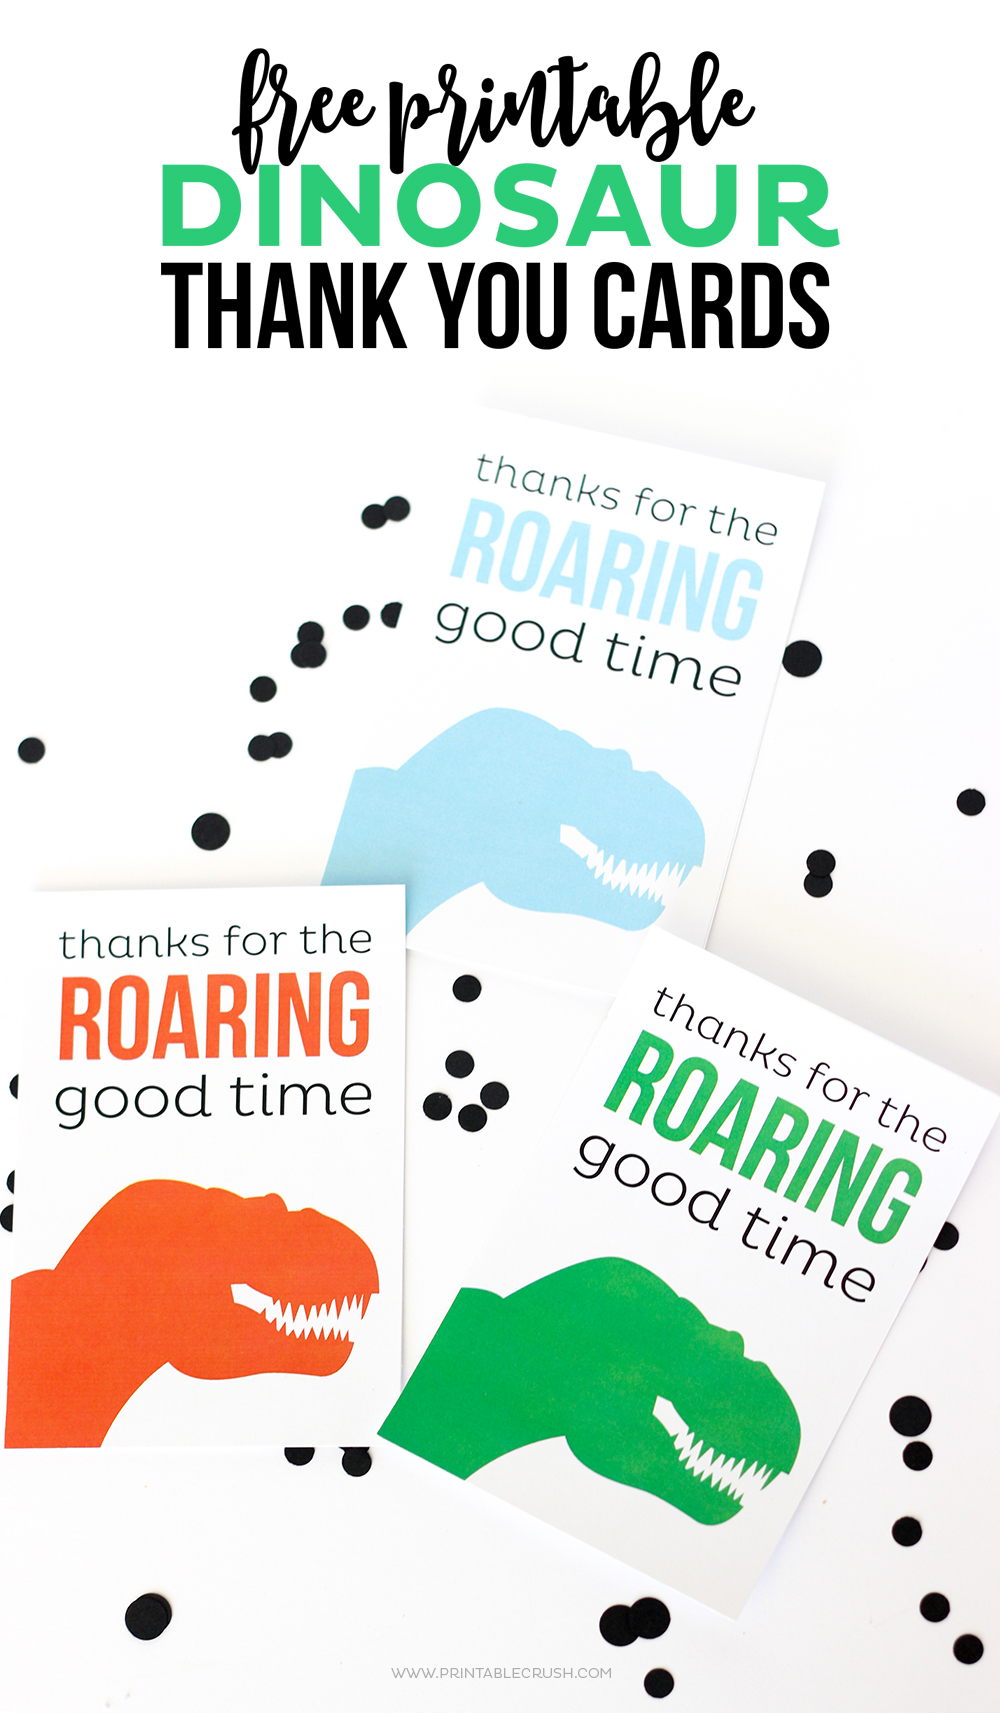 3 dinosaur thank you cards against white background